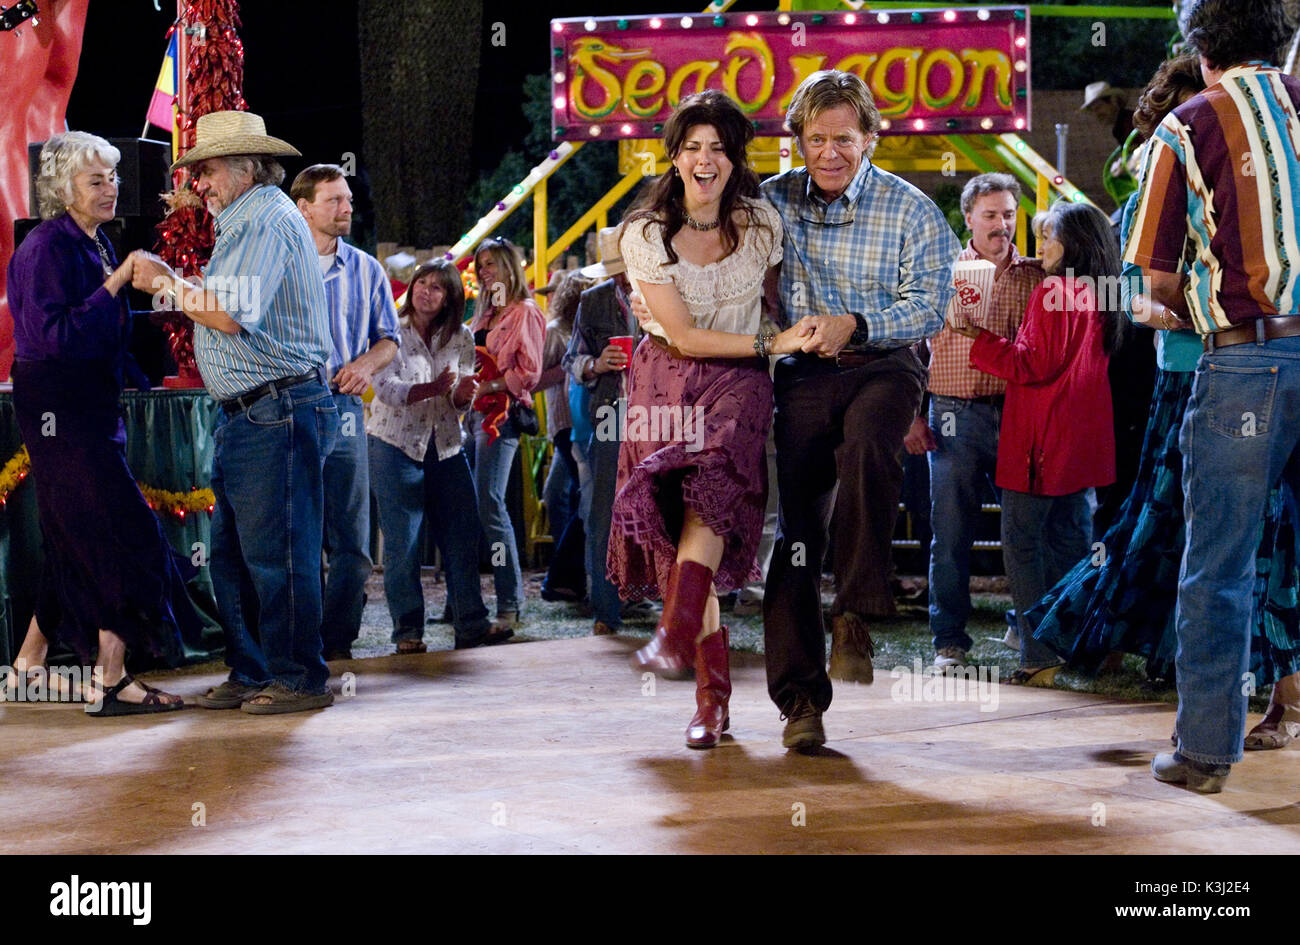 """WILD HOGS MARISA TOMEI, WILLIAM H MACY  """"Wild Hogs"""" Marisa Tomei, William H. Macy ©Touchstone Pictures. All rights reserved.     Date: 2006 - Stock Image"""